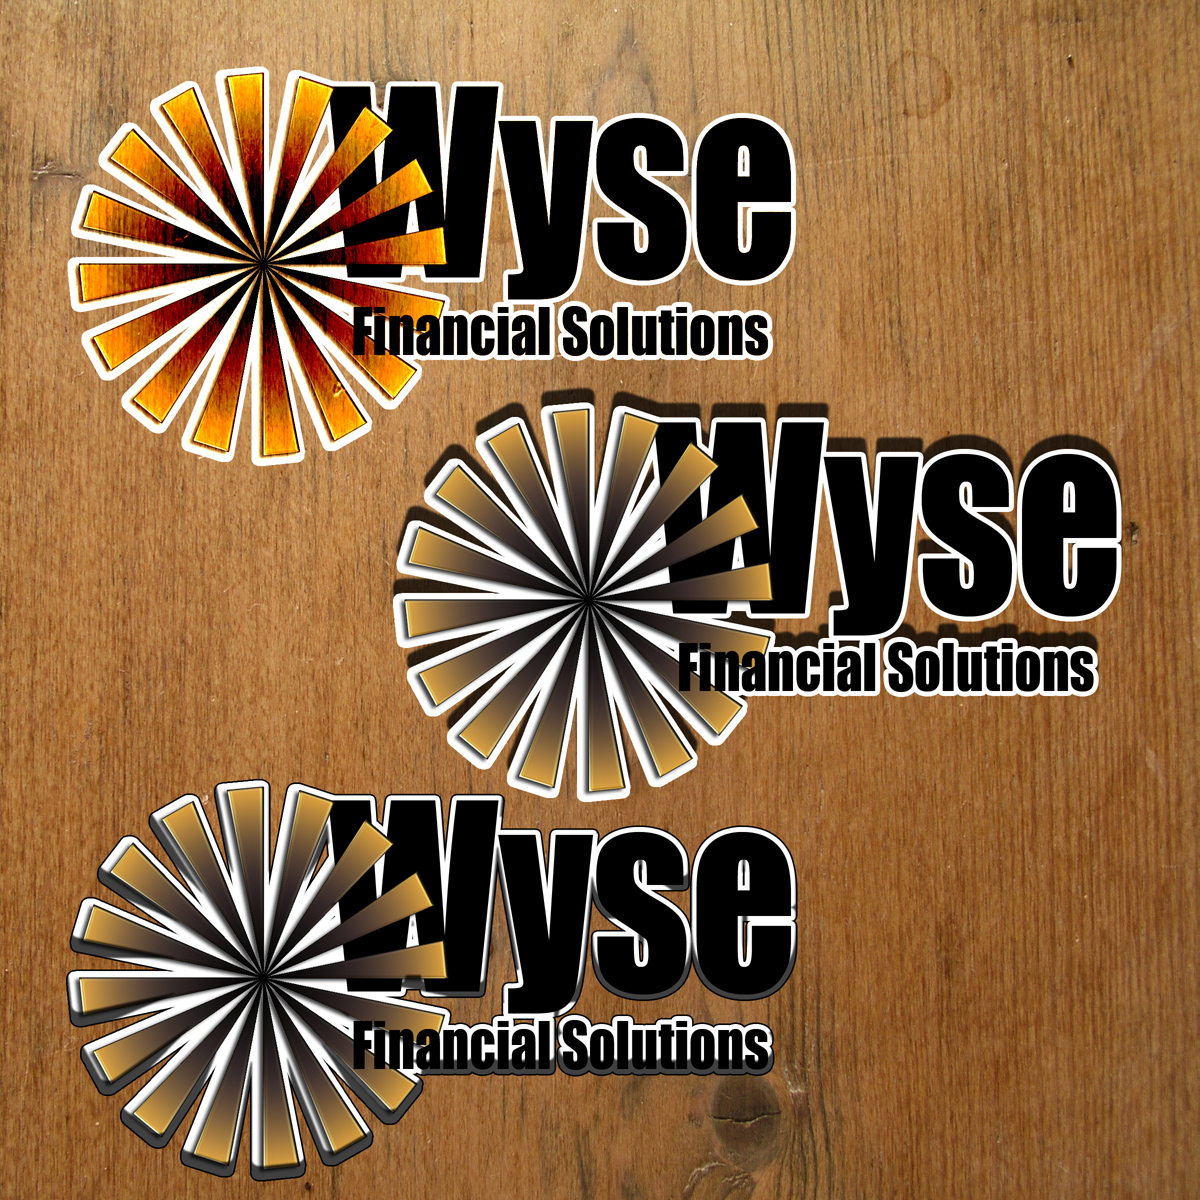 Logo Design by MITUCA ANDREI - Entry No. 31 in the Logo Design Contest Fun Logo Design for Wyse Financial Solutions.